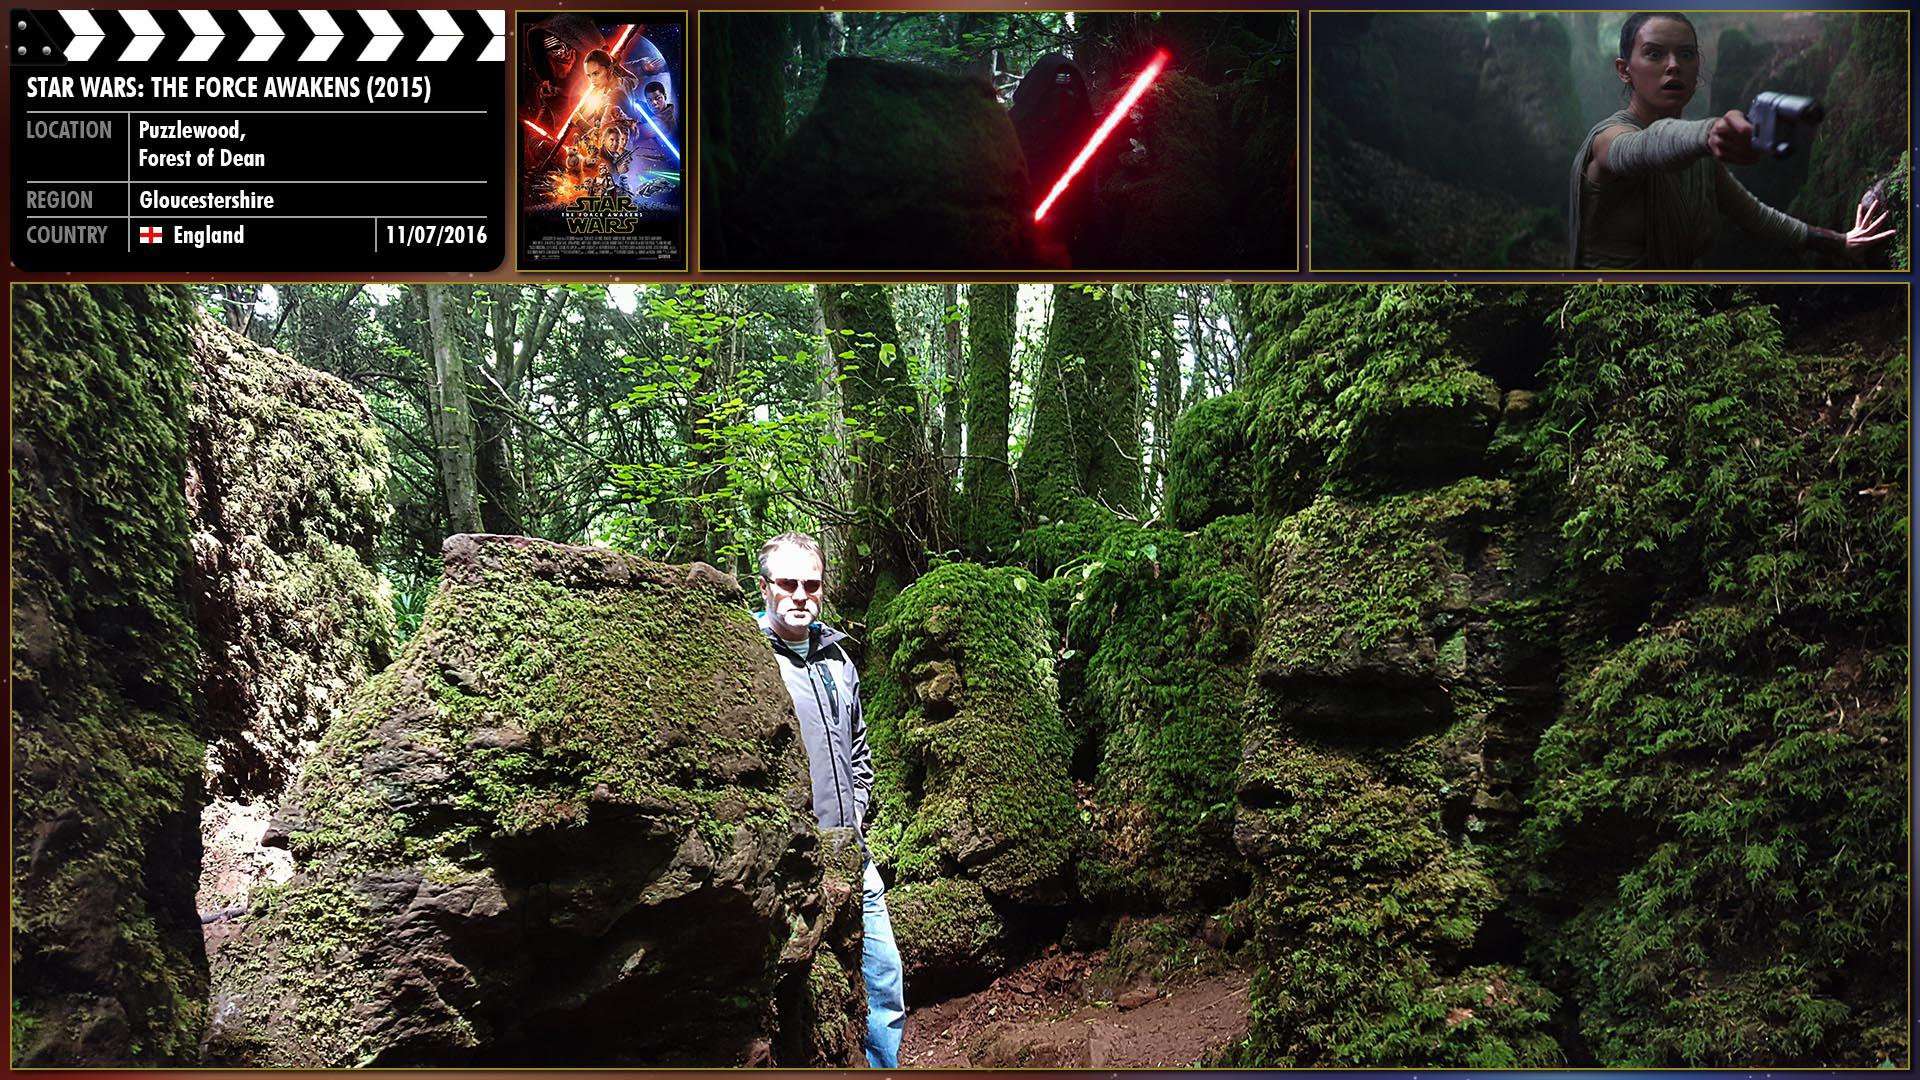 Filming location photo for Star Wars: The Force Awakens (2015) 4 of 17